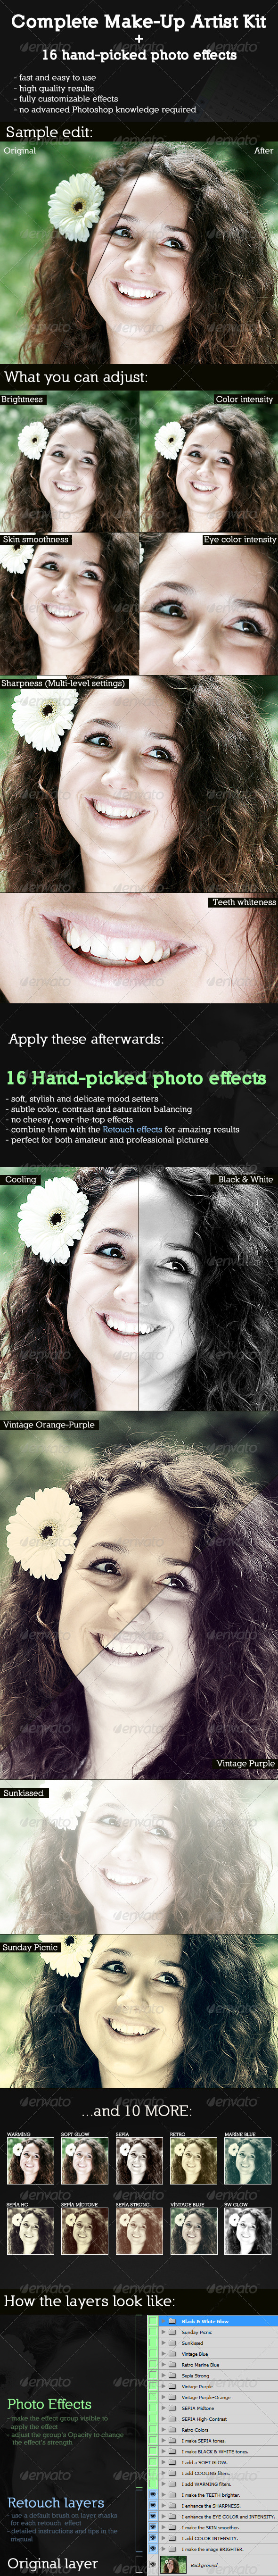 Complete Make-Up Artist Kit GraphicRiver - Add-ons -  Photoshop  Actions  Photo Effects 1020480